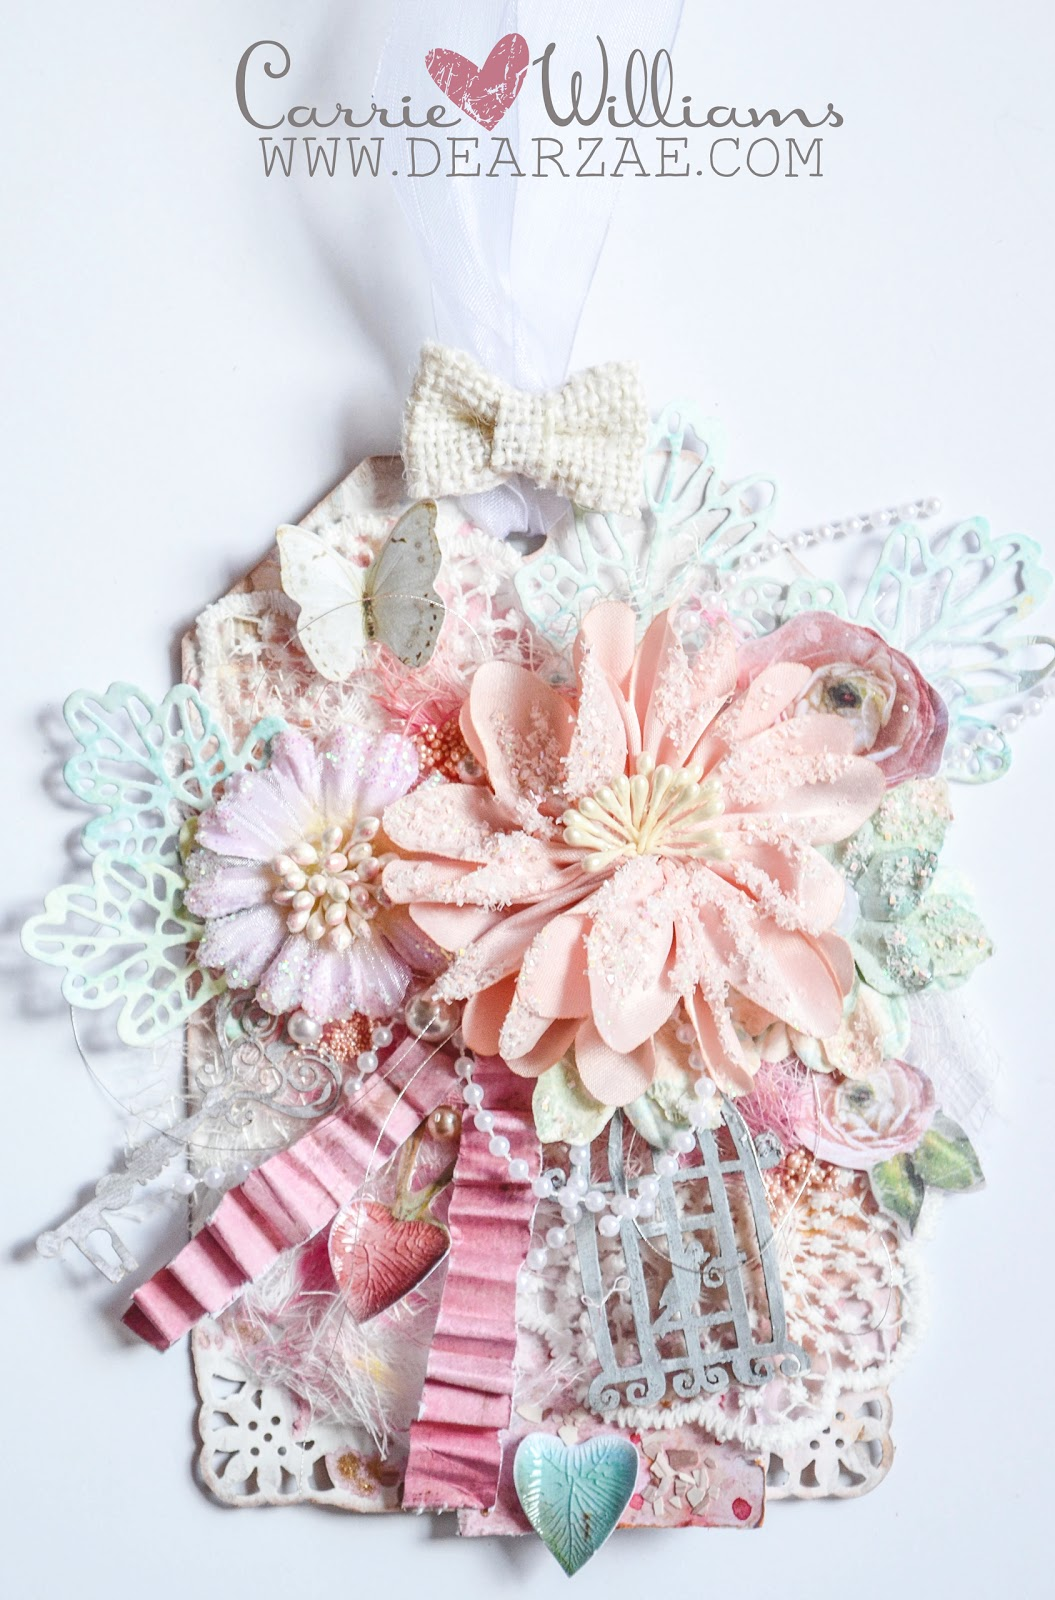 Shabby chic vintage mixed media tag with die cuts and Prima flowers and lace